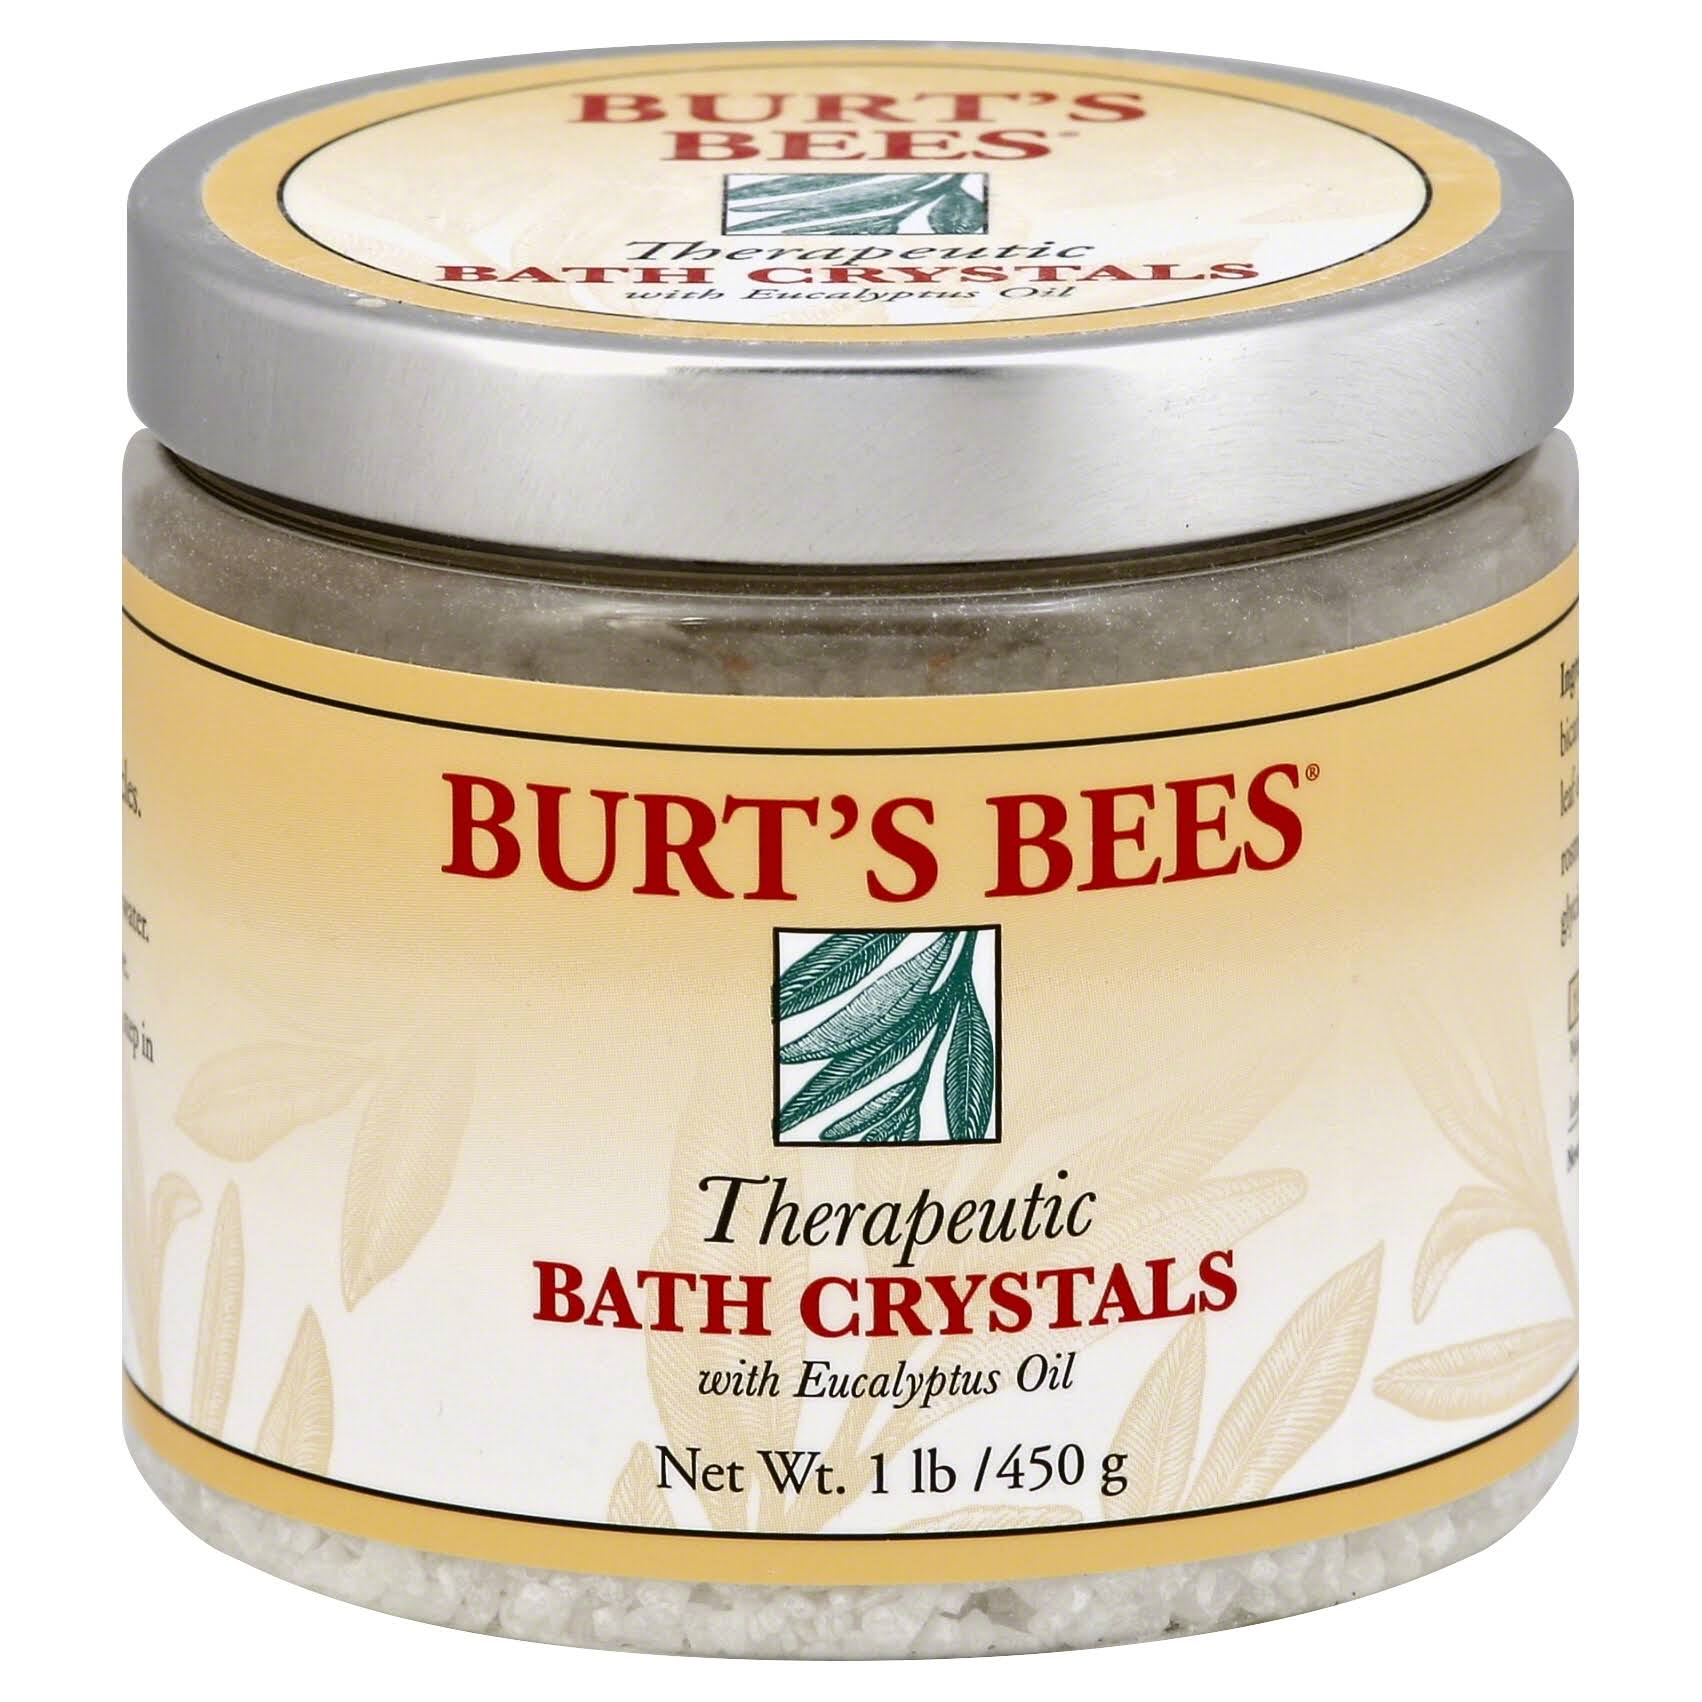 Burt's Bees Therapeutic Bath Crystals - 450g